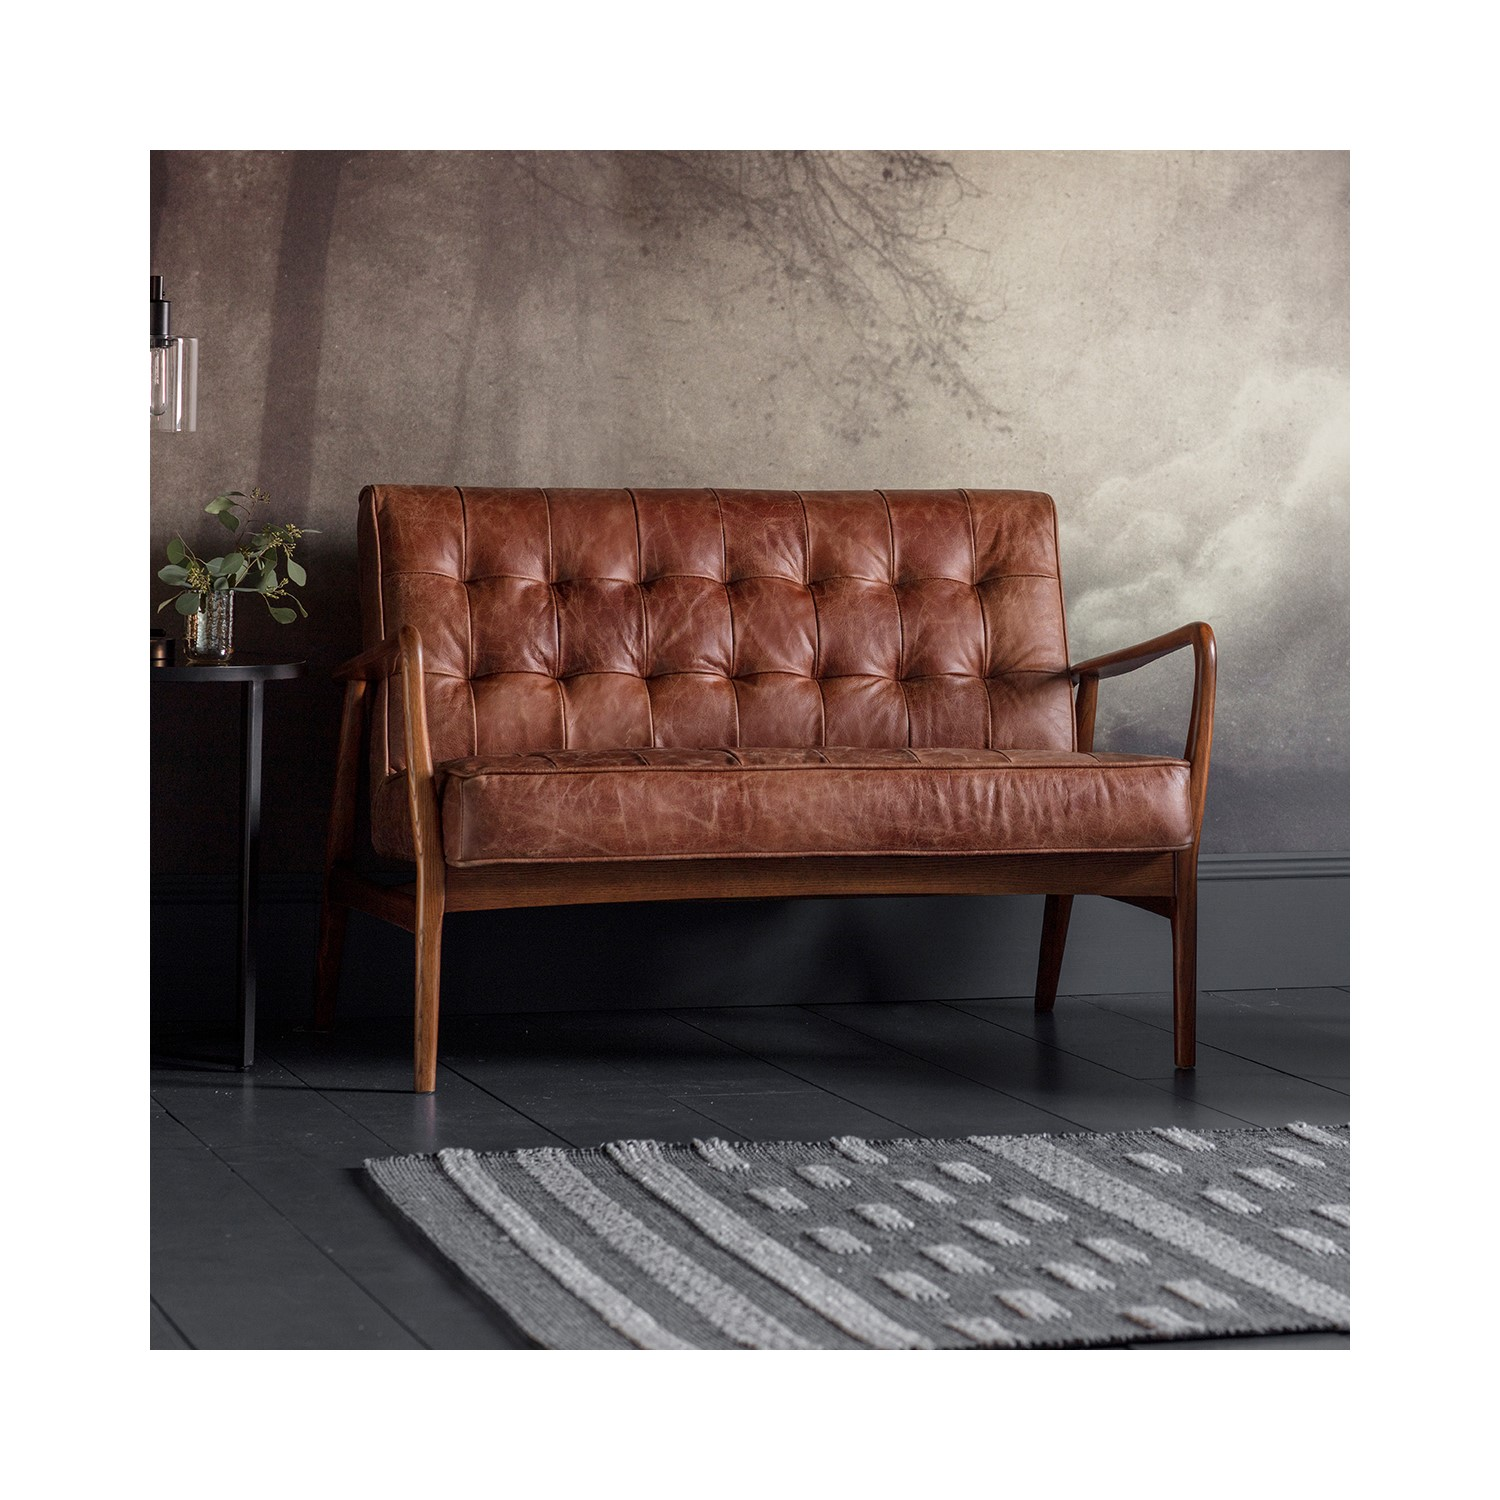 Gallery Humber Brown 2 Seater Leather Sofa   Tufted Detailing